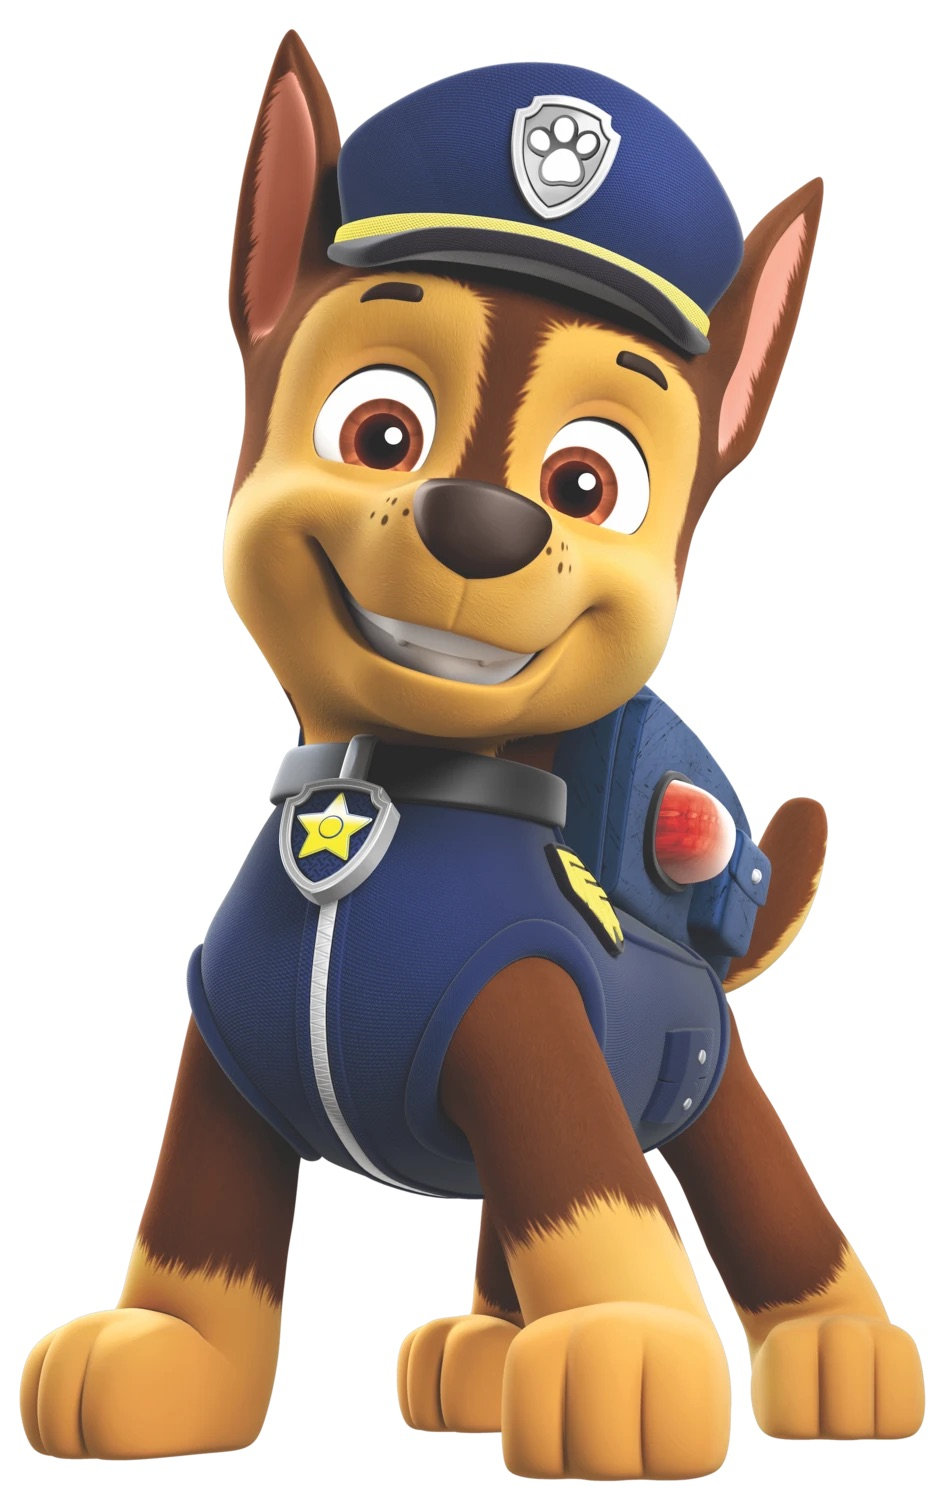 Meet and Greet Chase from Paw Patrol